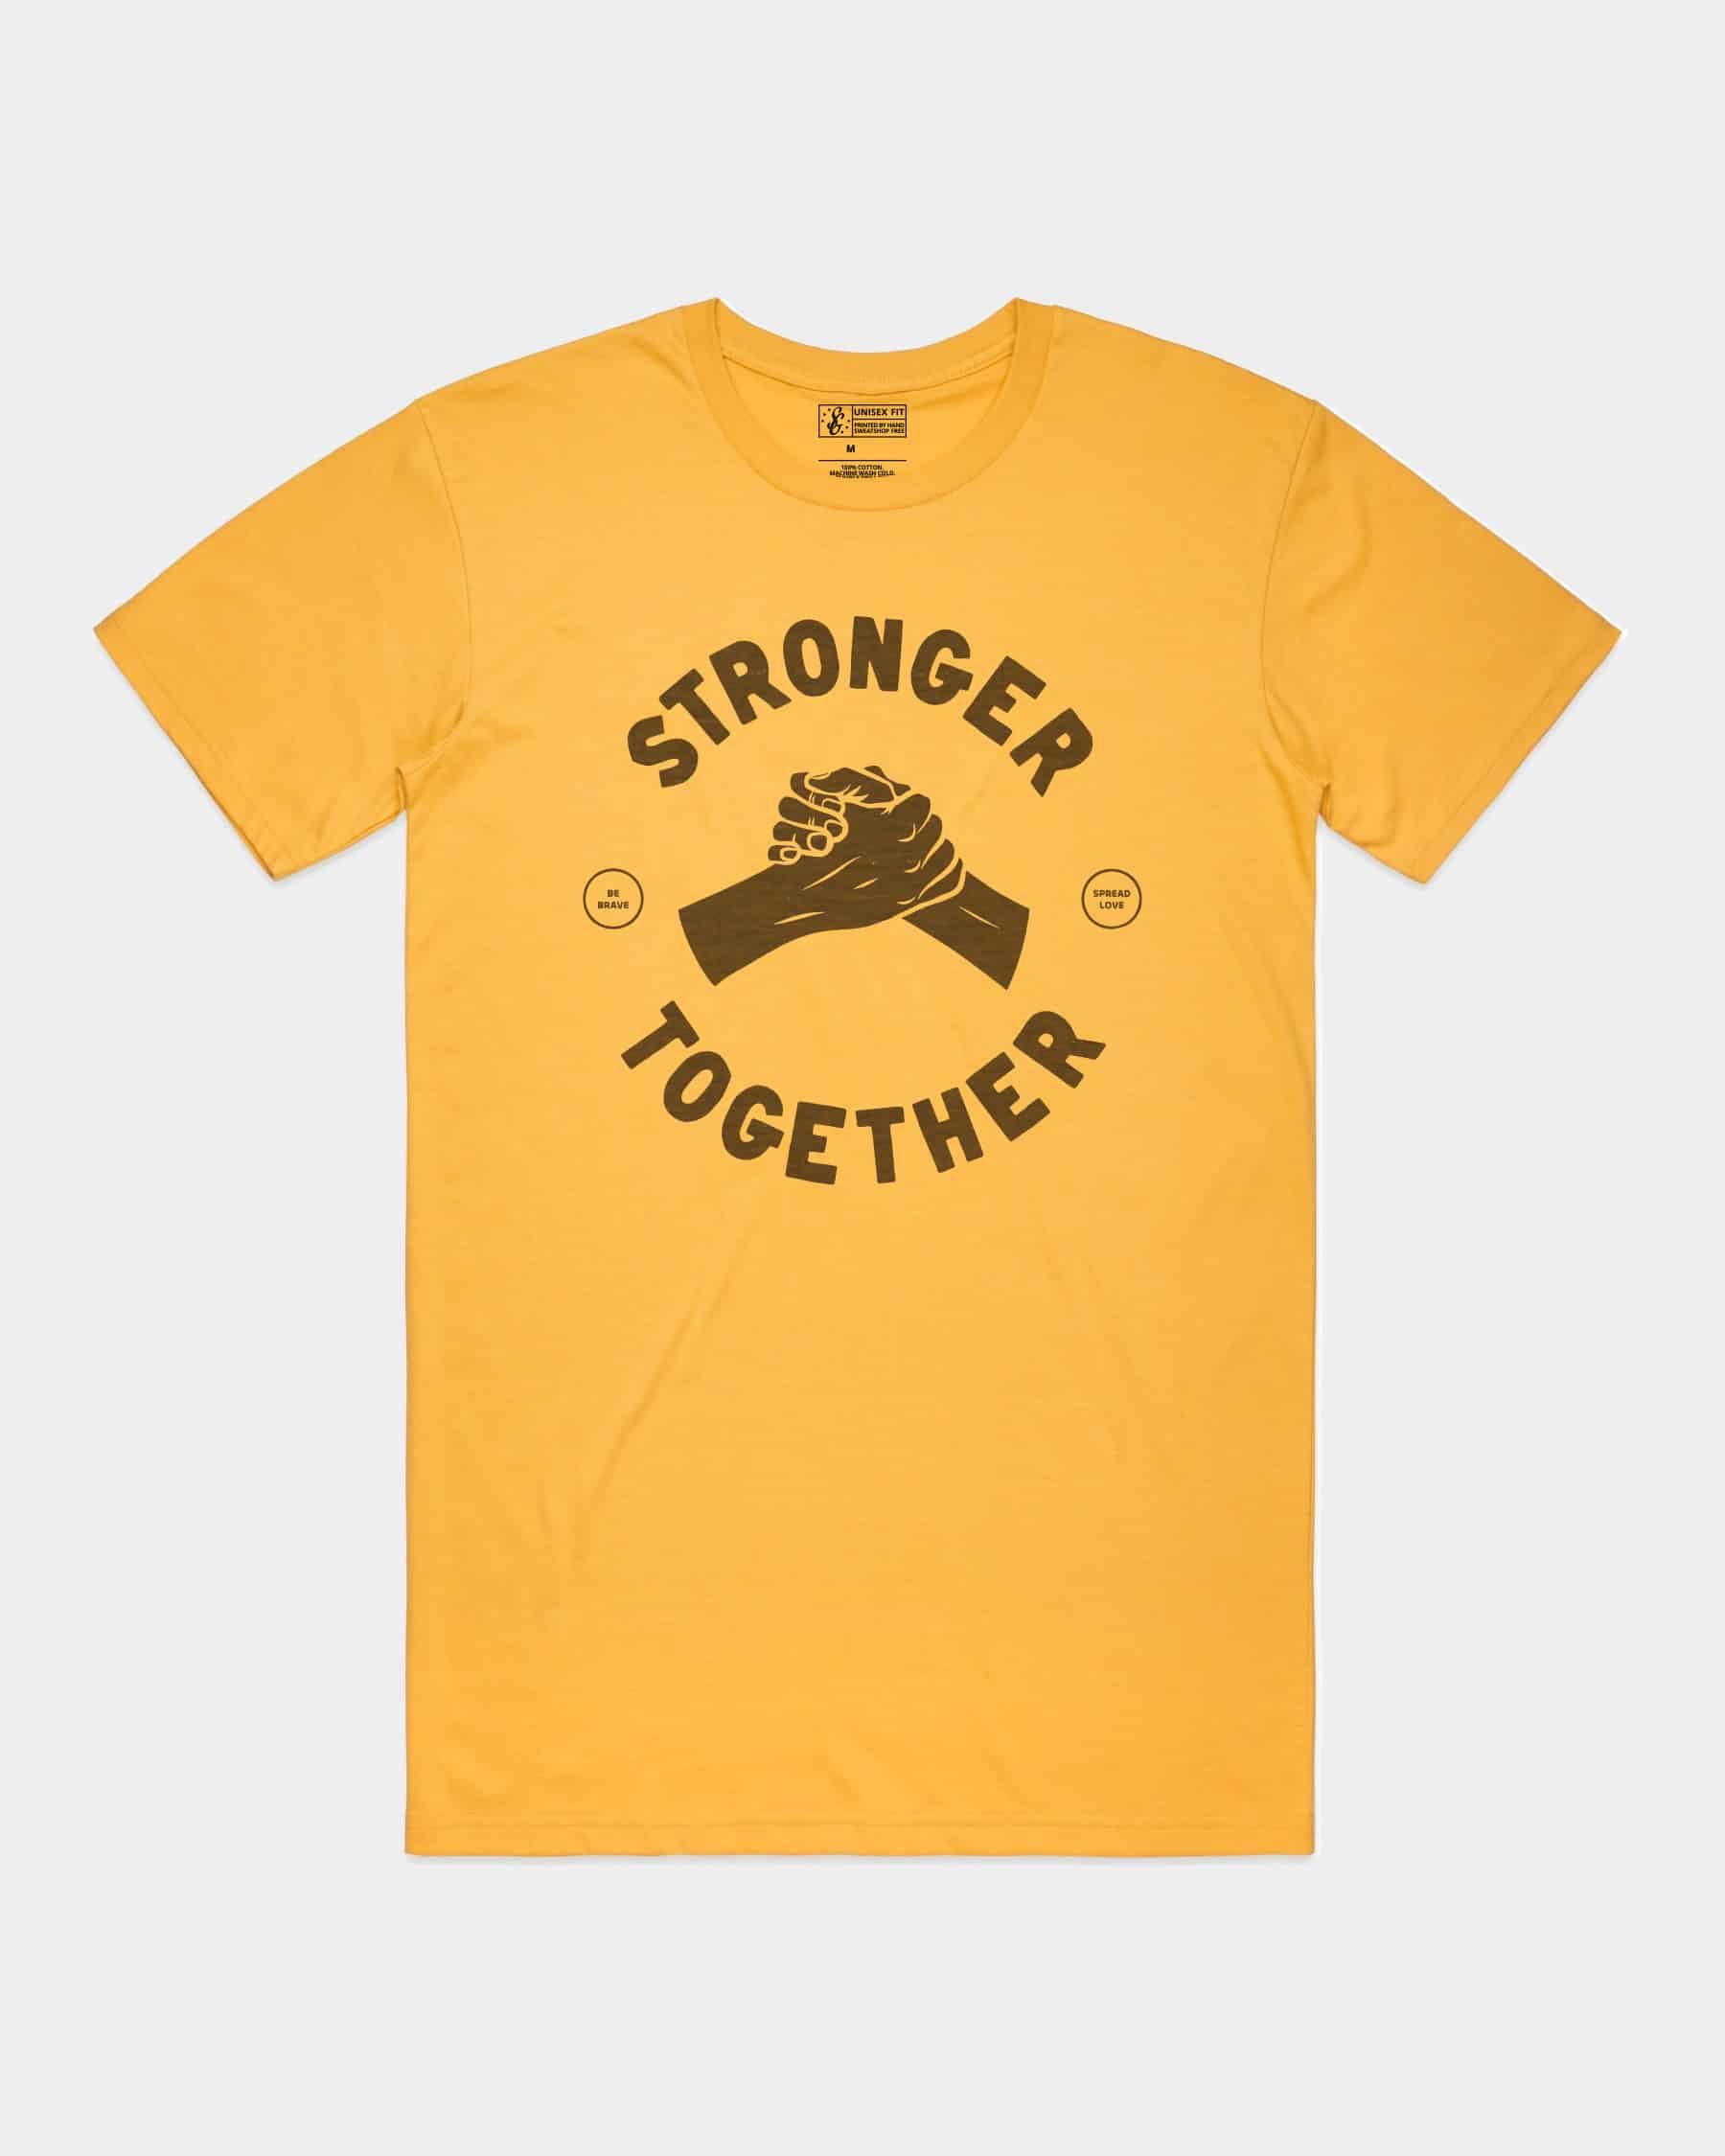 SOLIDARITY SERIES No. 1: Stronger Together